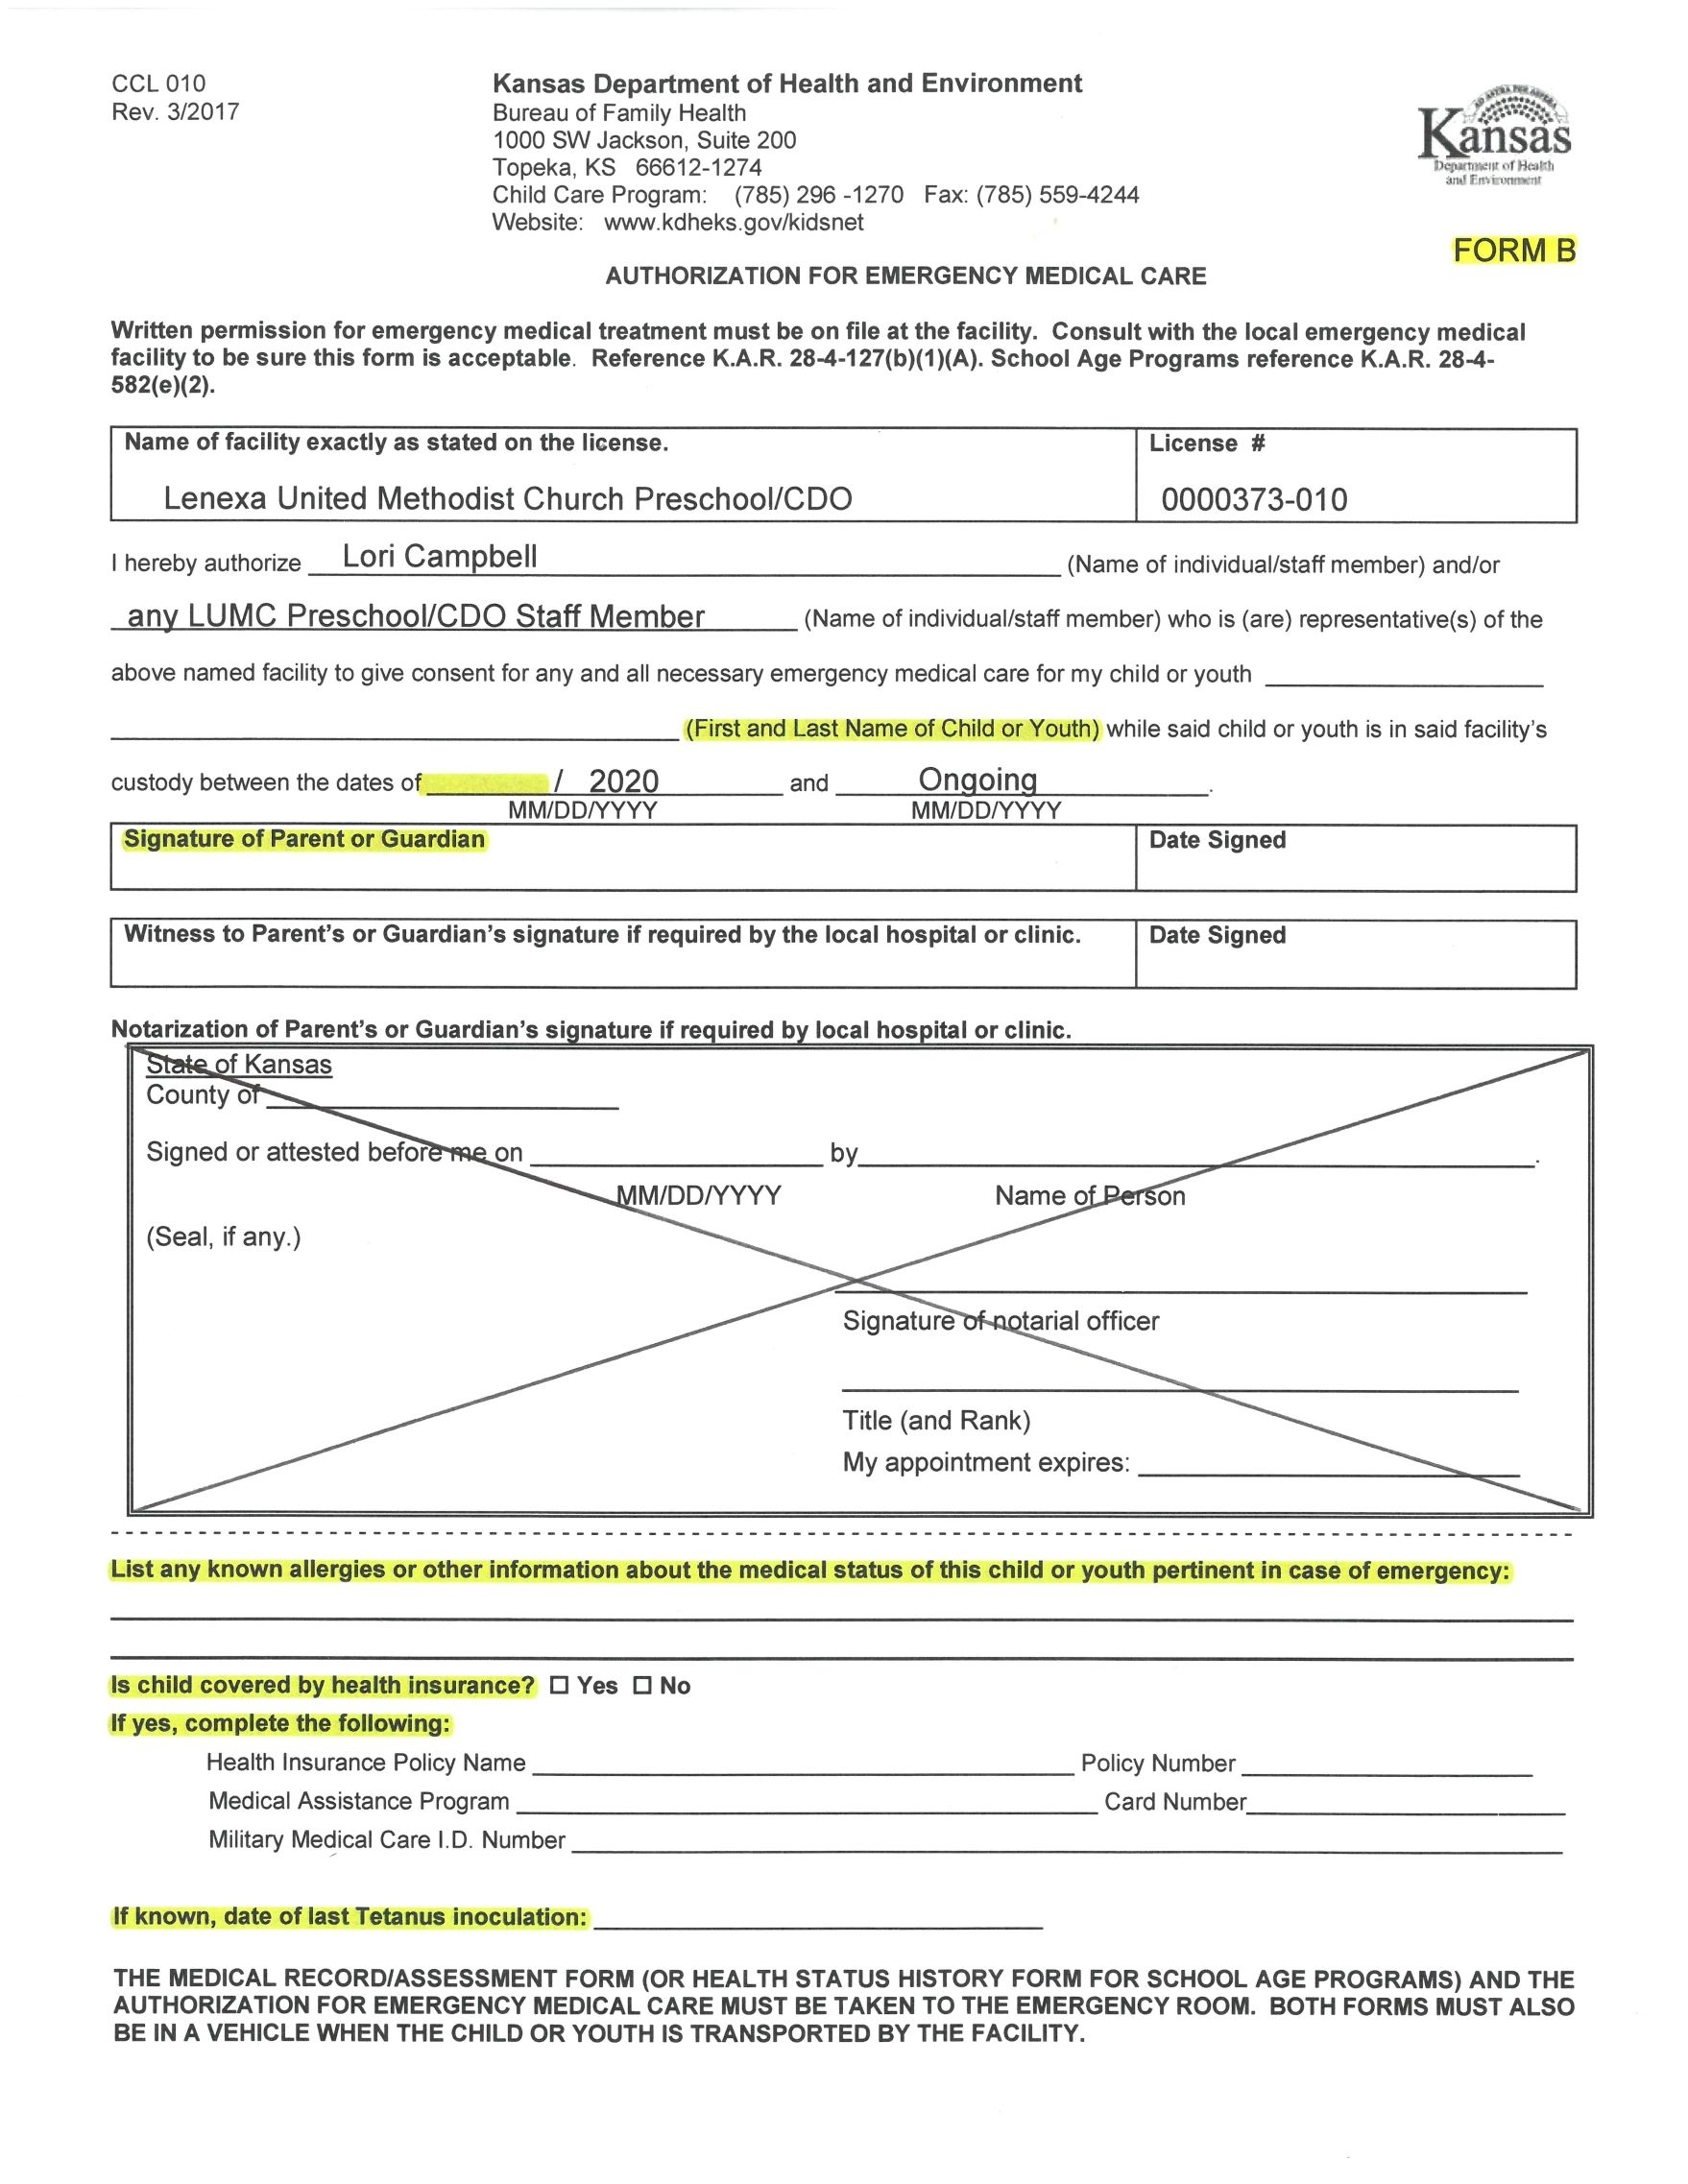 Enrollment Forms - Home